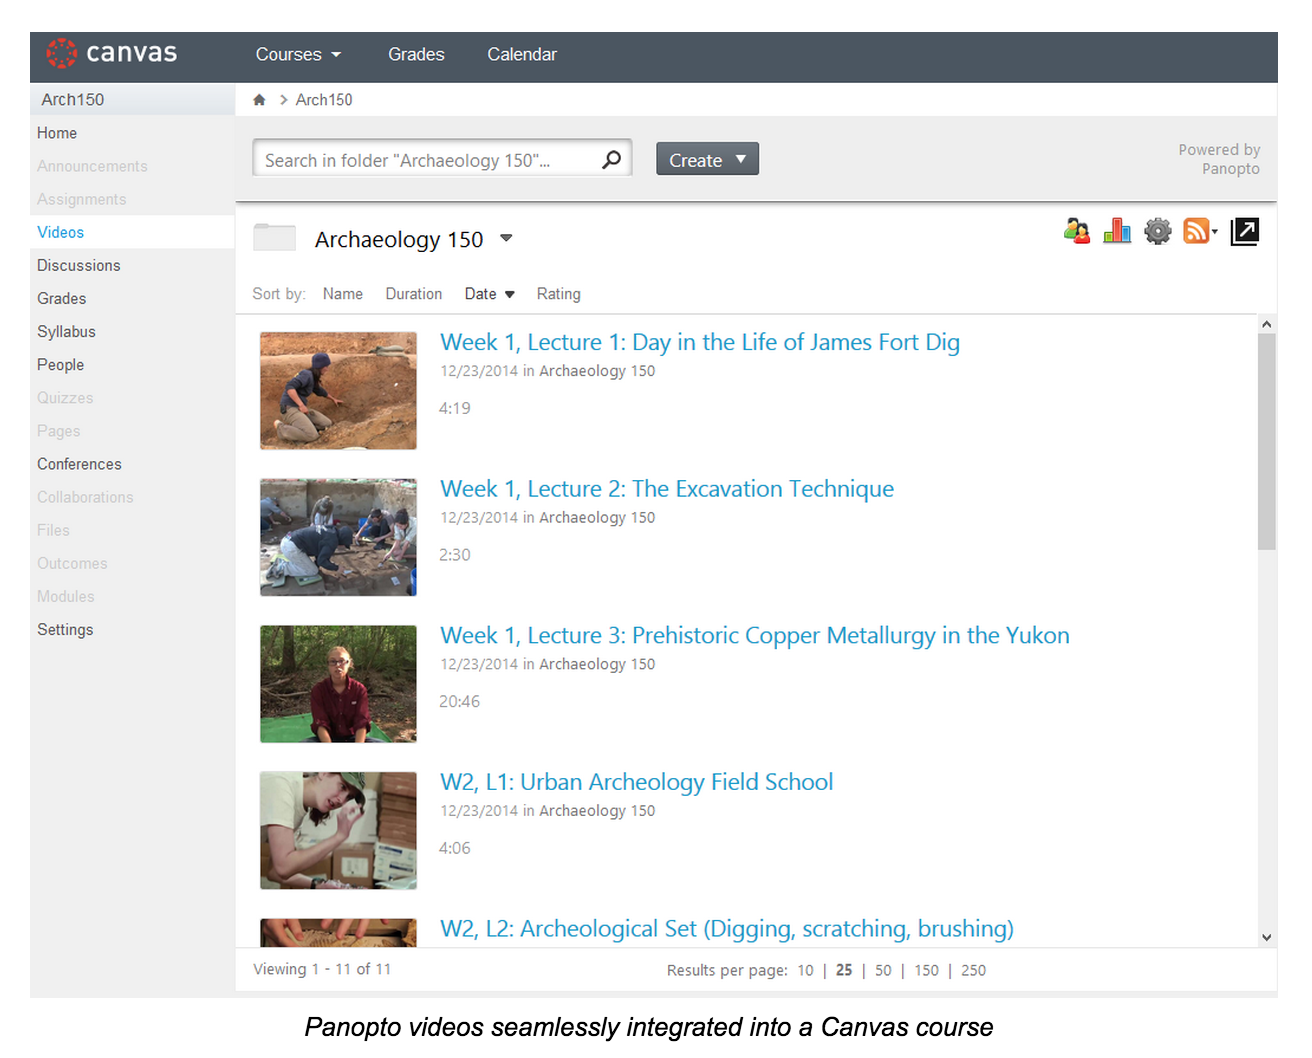 Panopto Videos Integrated Into Canvas Course